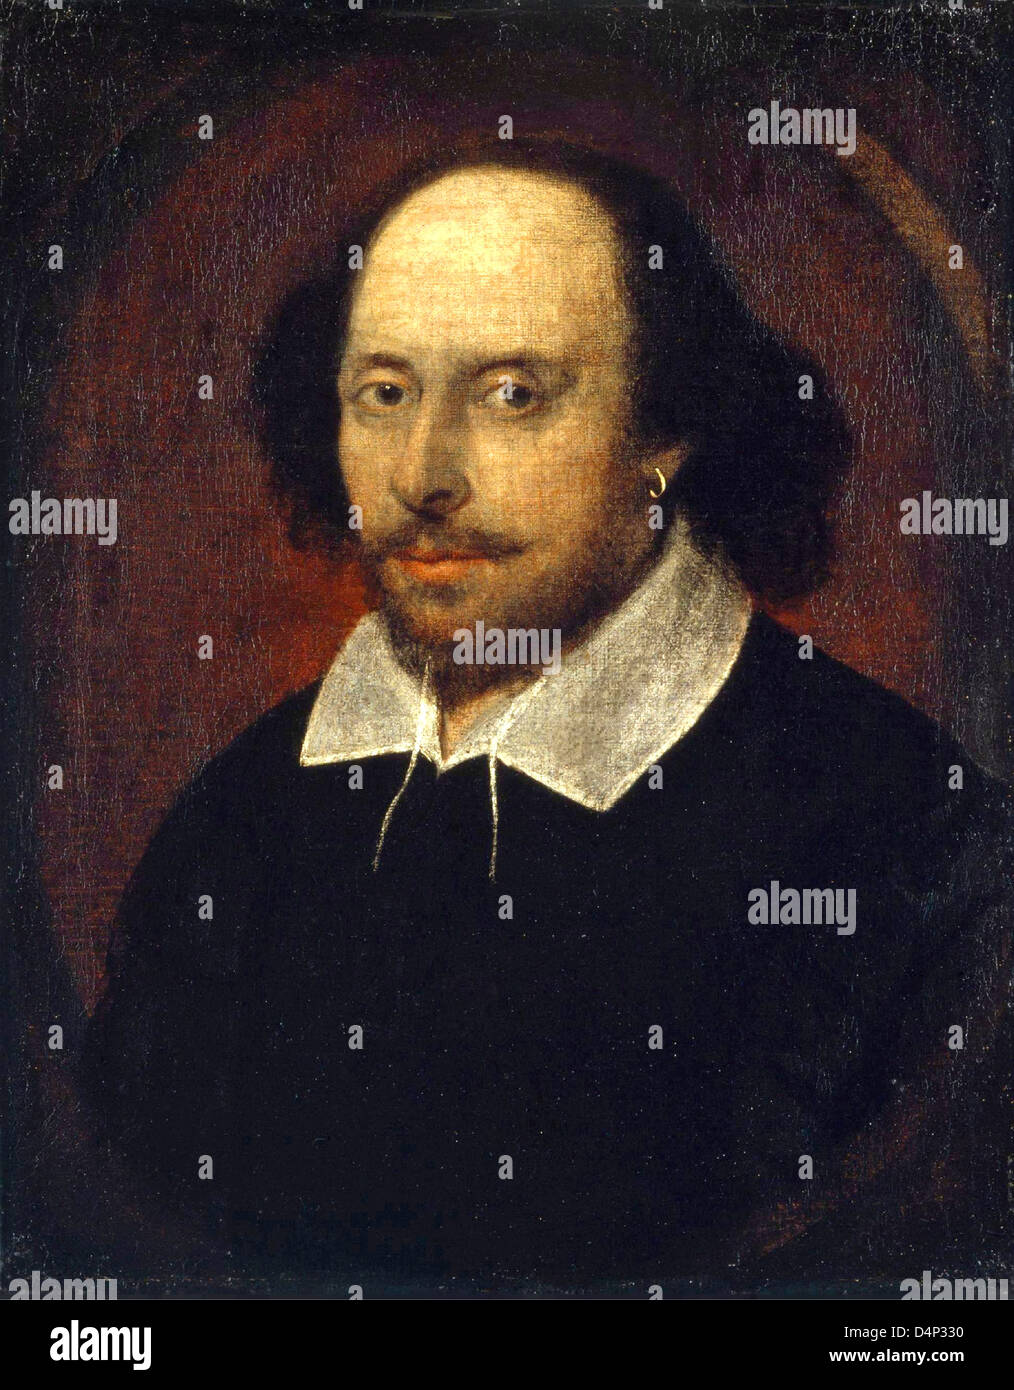 William Shakespeare - Stock Image